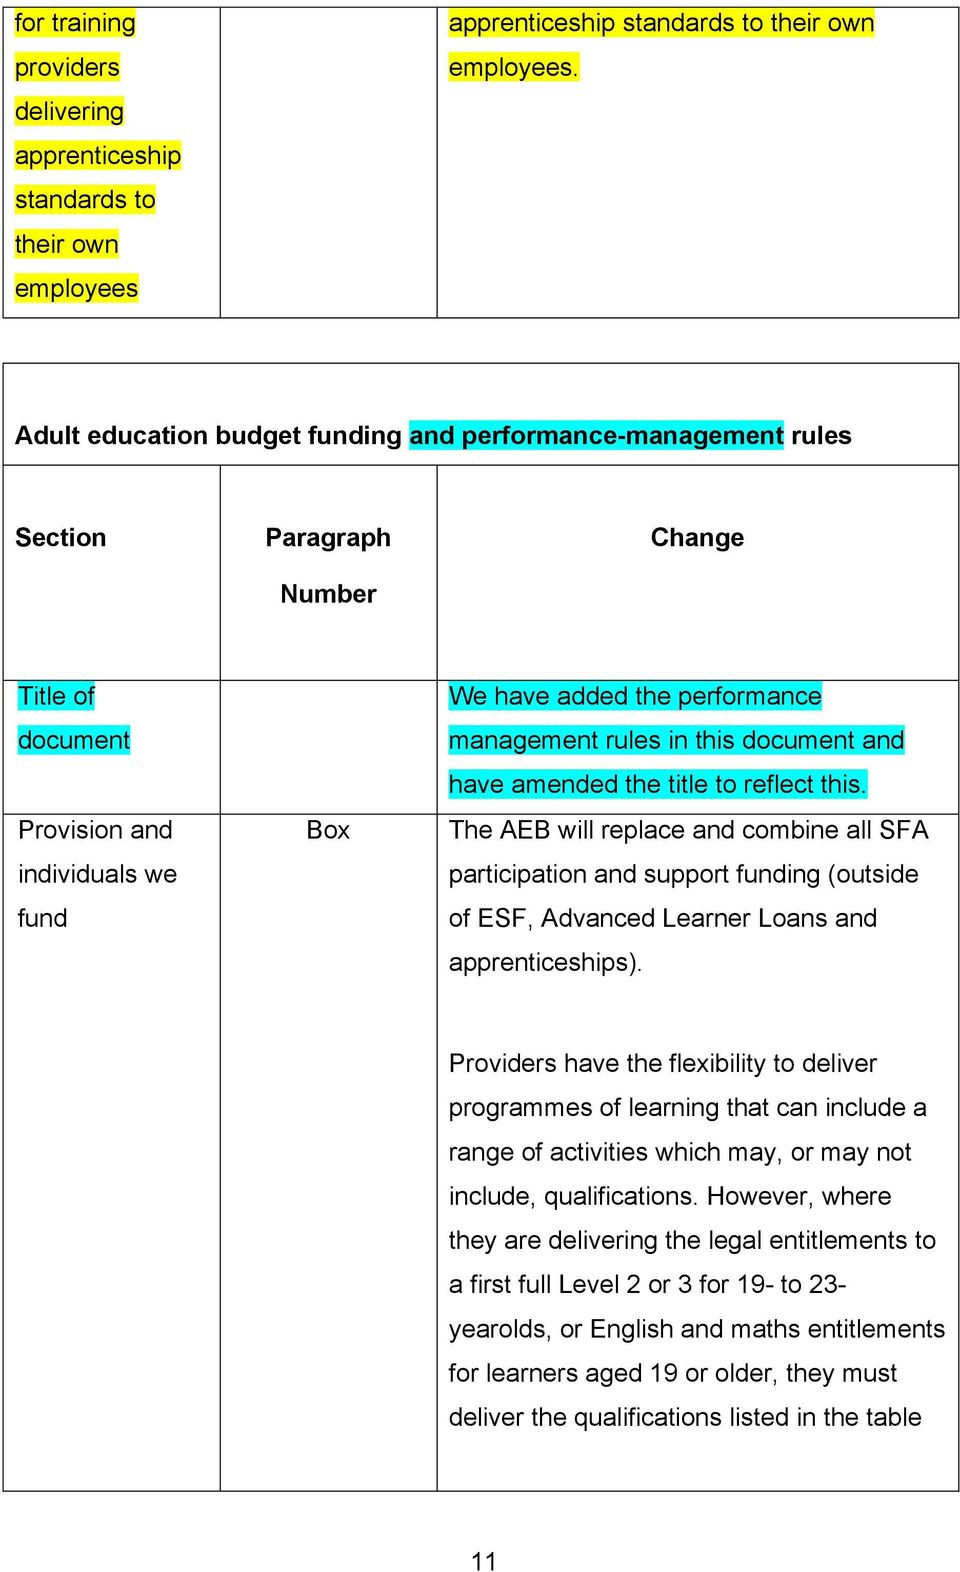 in this document and have amended the title to reflect this. The AEB will replace and combine all SFA participation and support funding (outside of ESF, Advanced Learner Loans and apprenticeships).